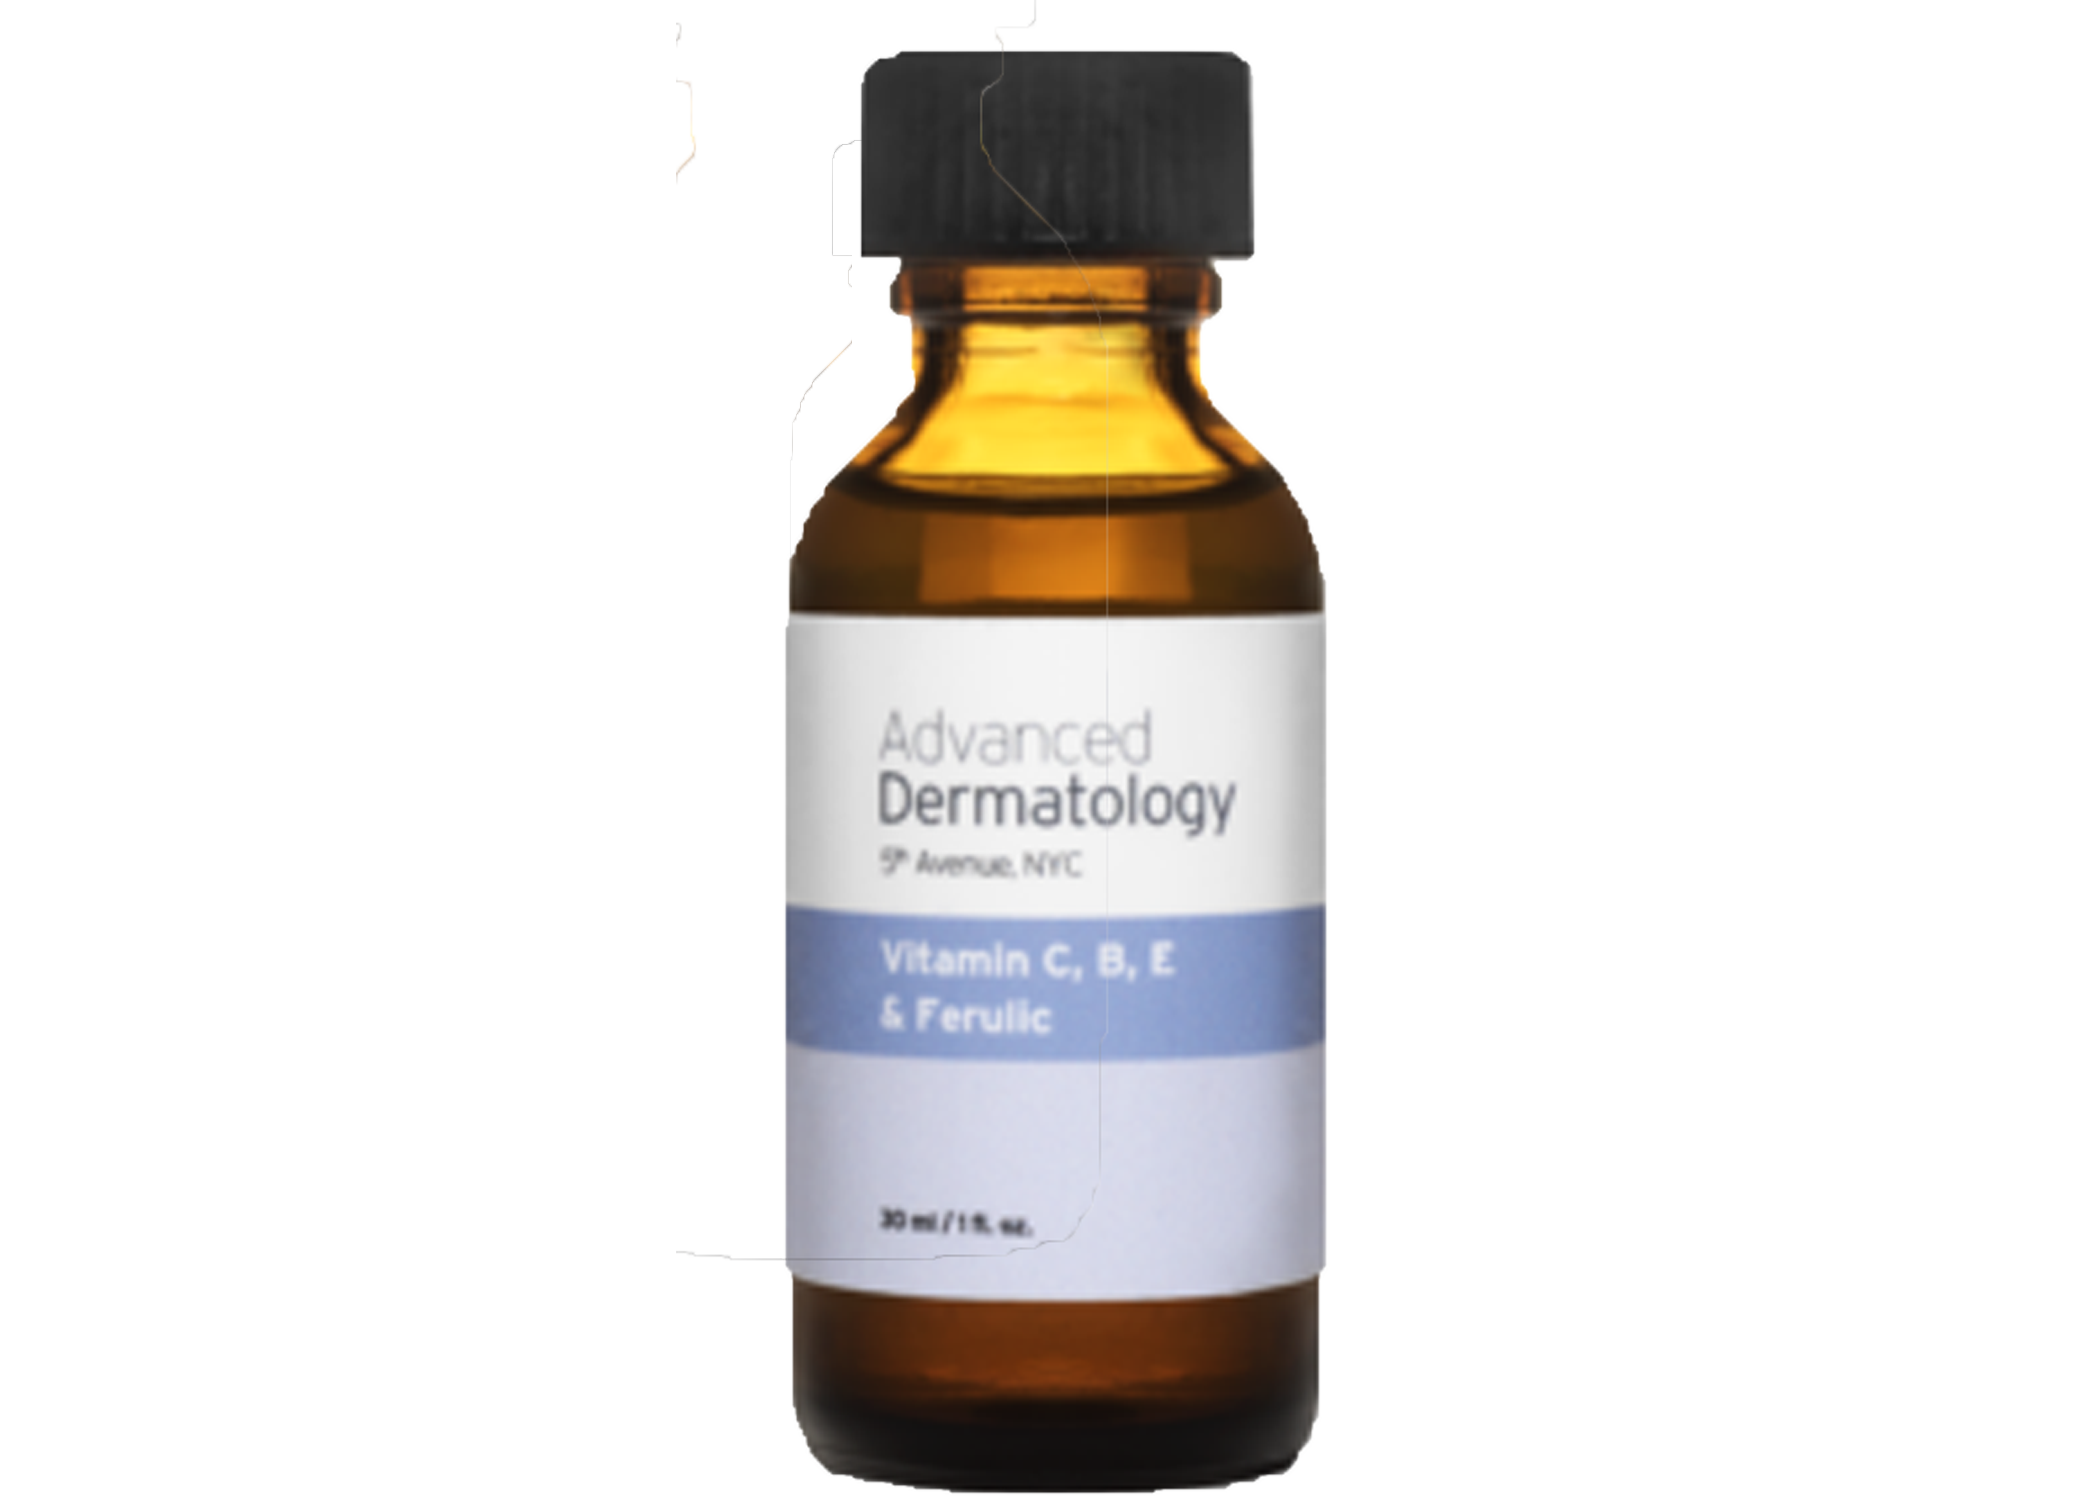 Advanced Dermatology Vitamin C, E, B & Ferulic Serum